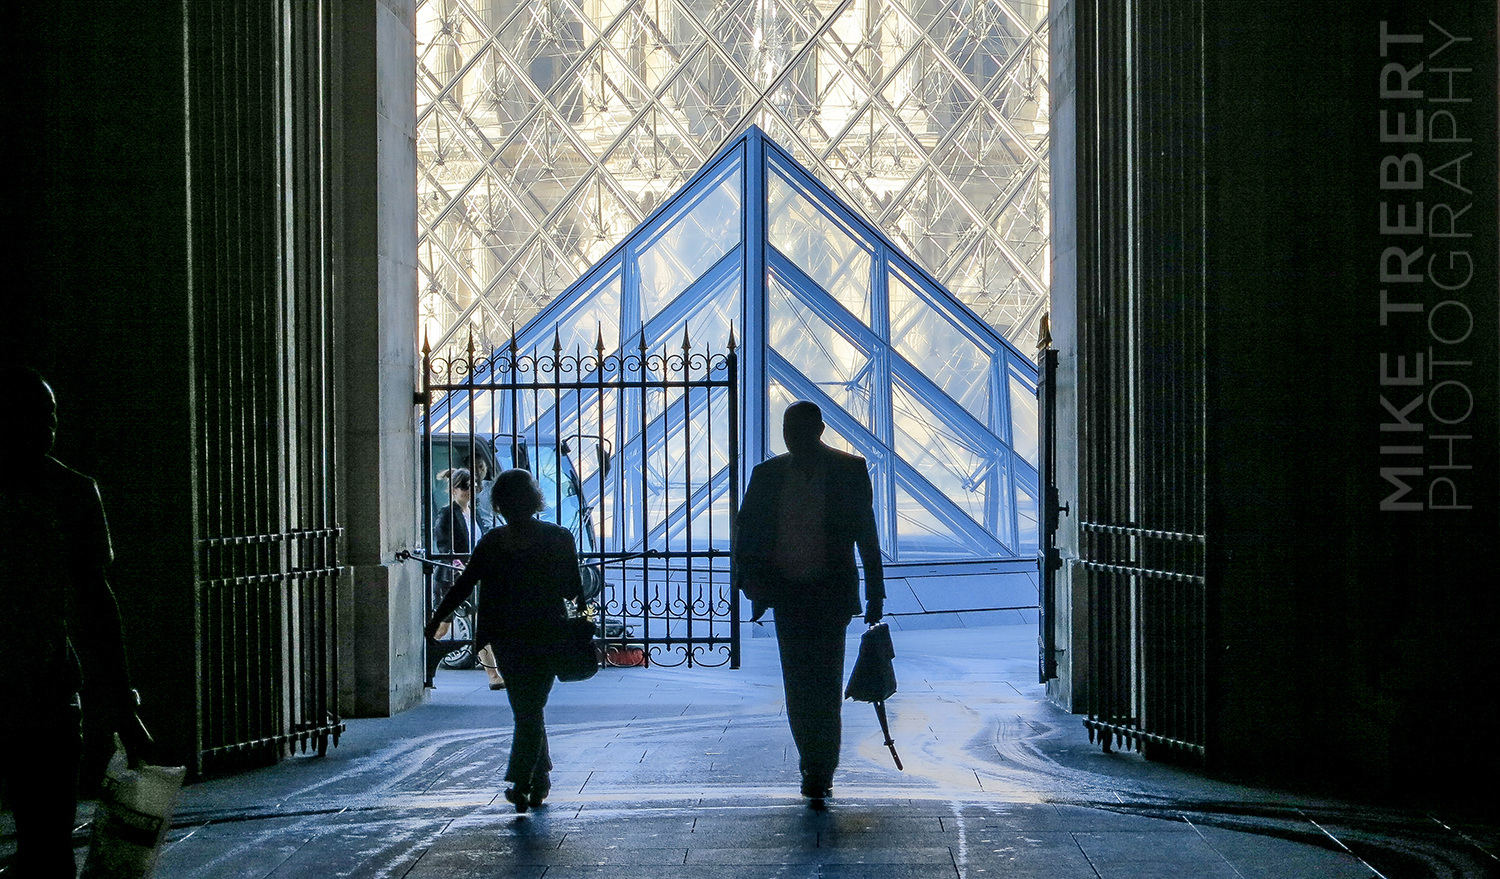 Early morning Paris. Heading through an entrance to The Louvre